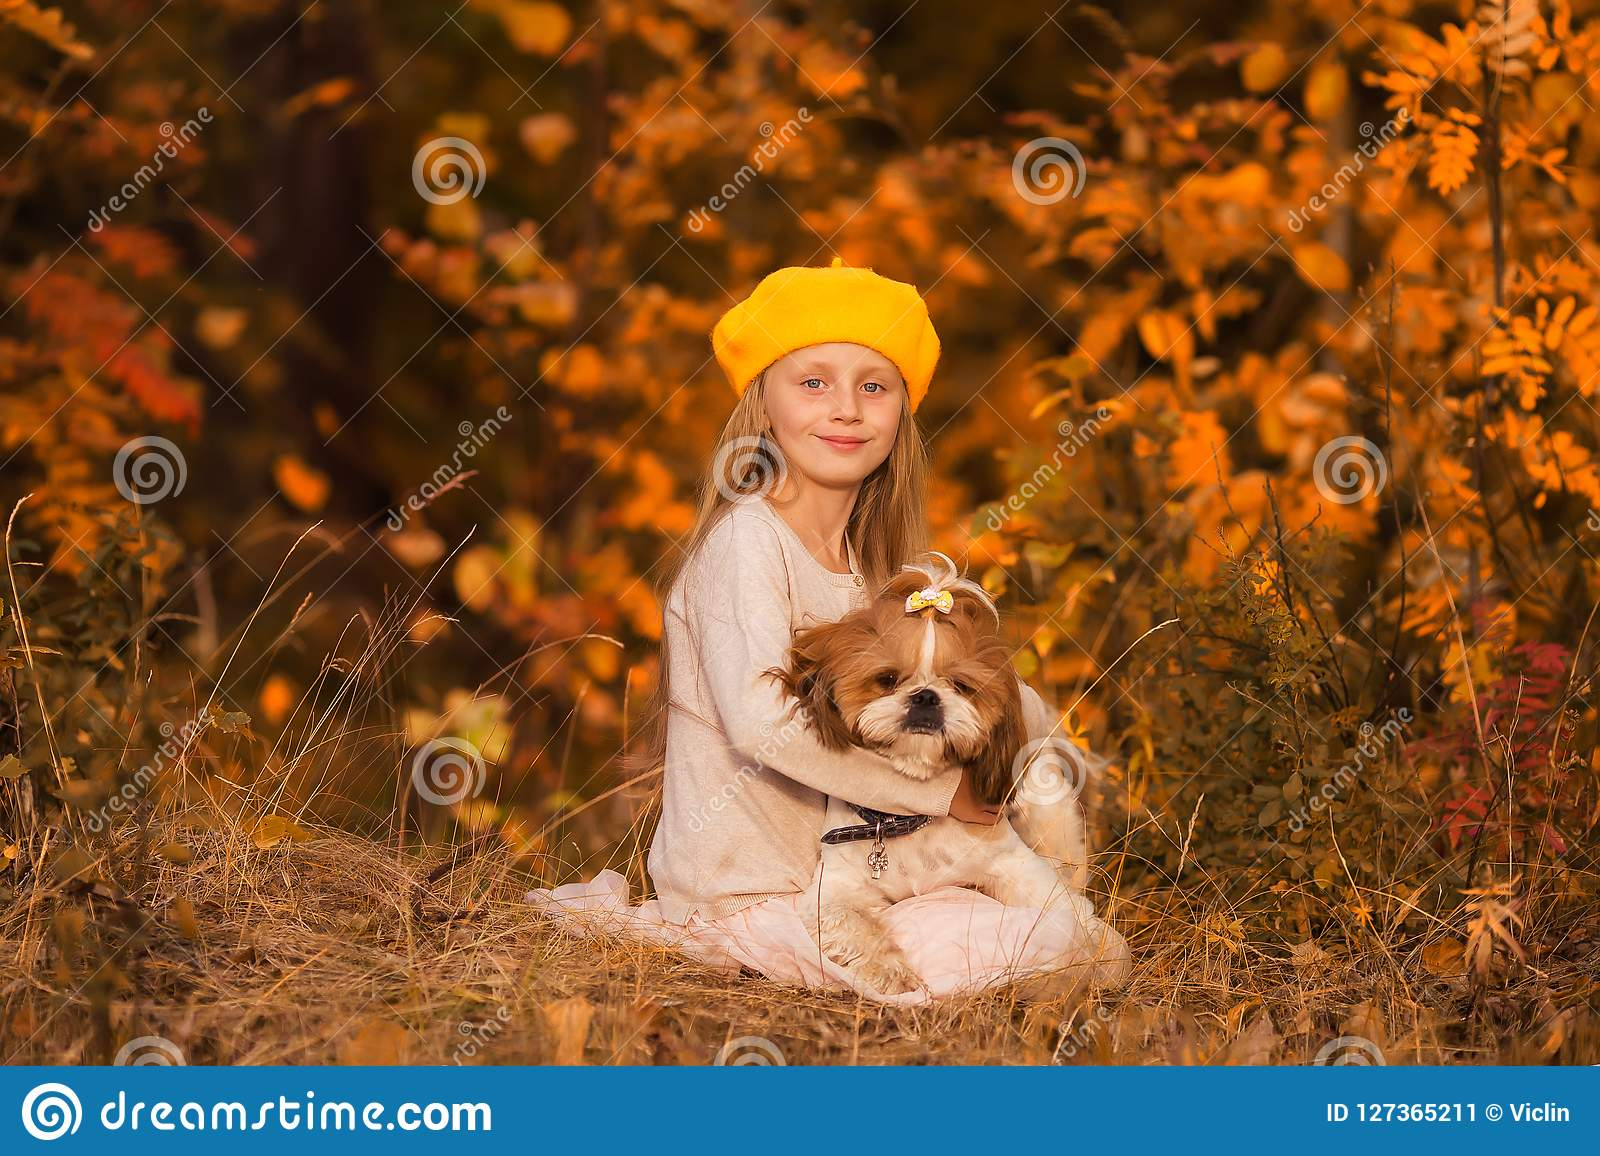 Sweet girl hugging dog shih tzu in the autumn forest.